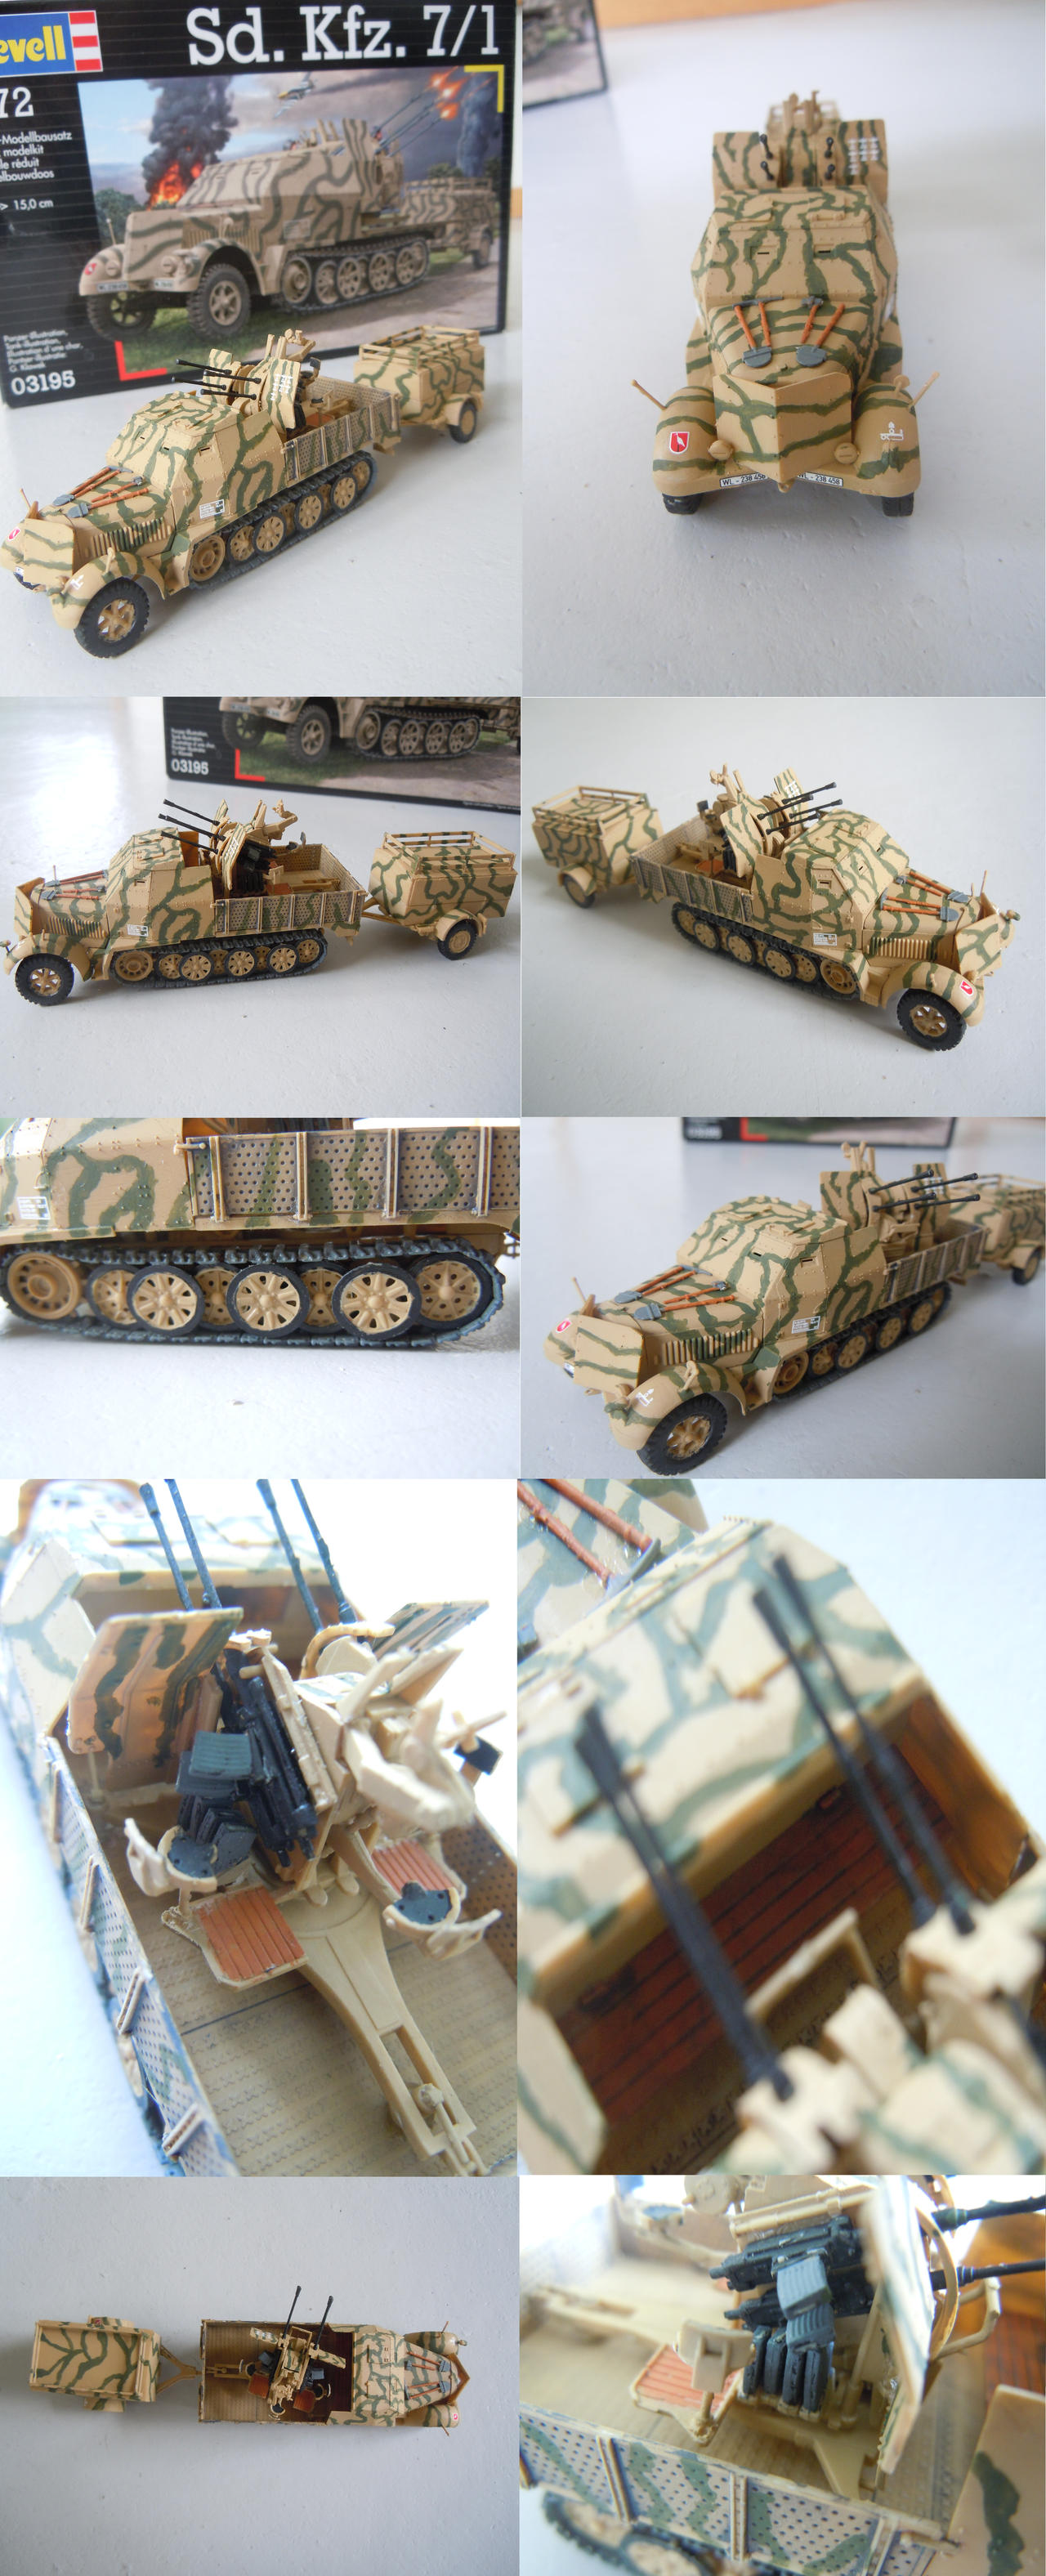 Sd.Kfz 7/1 by warrior1944